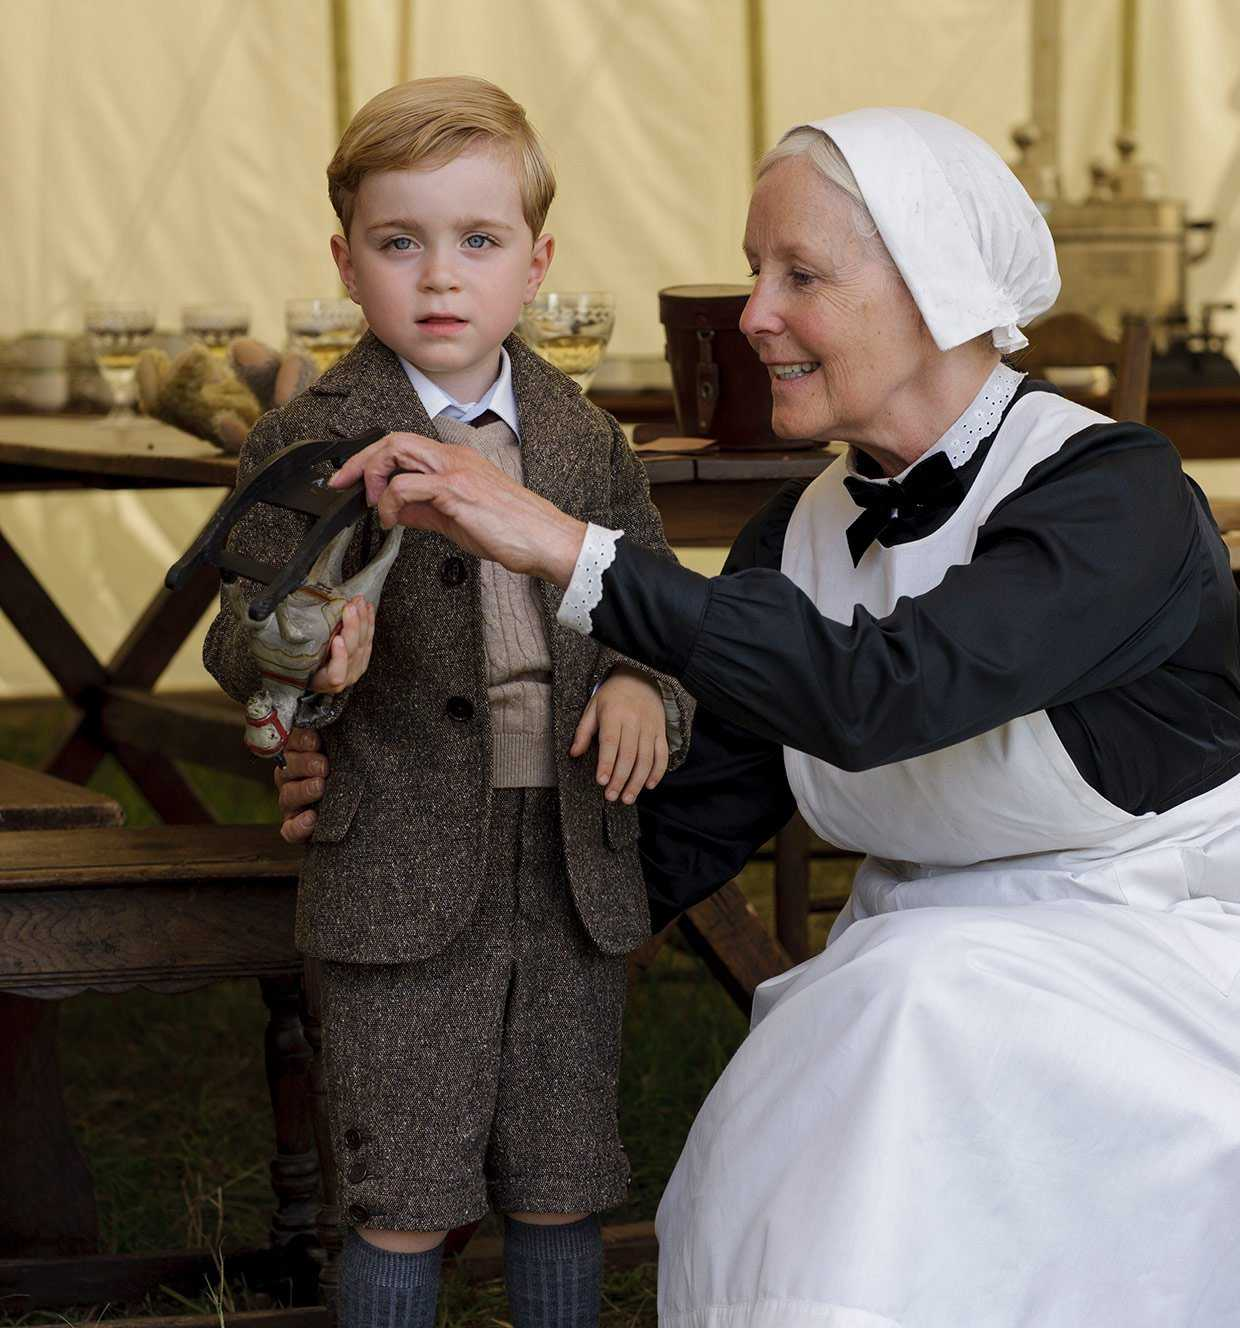 Meet The New Little Lord And Lady Of Downton Abbey | Downton Abbey